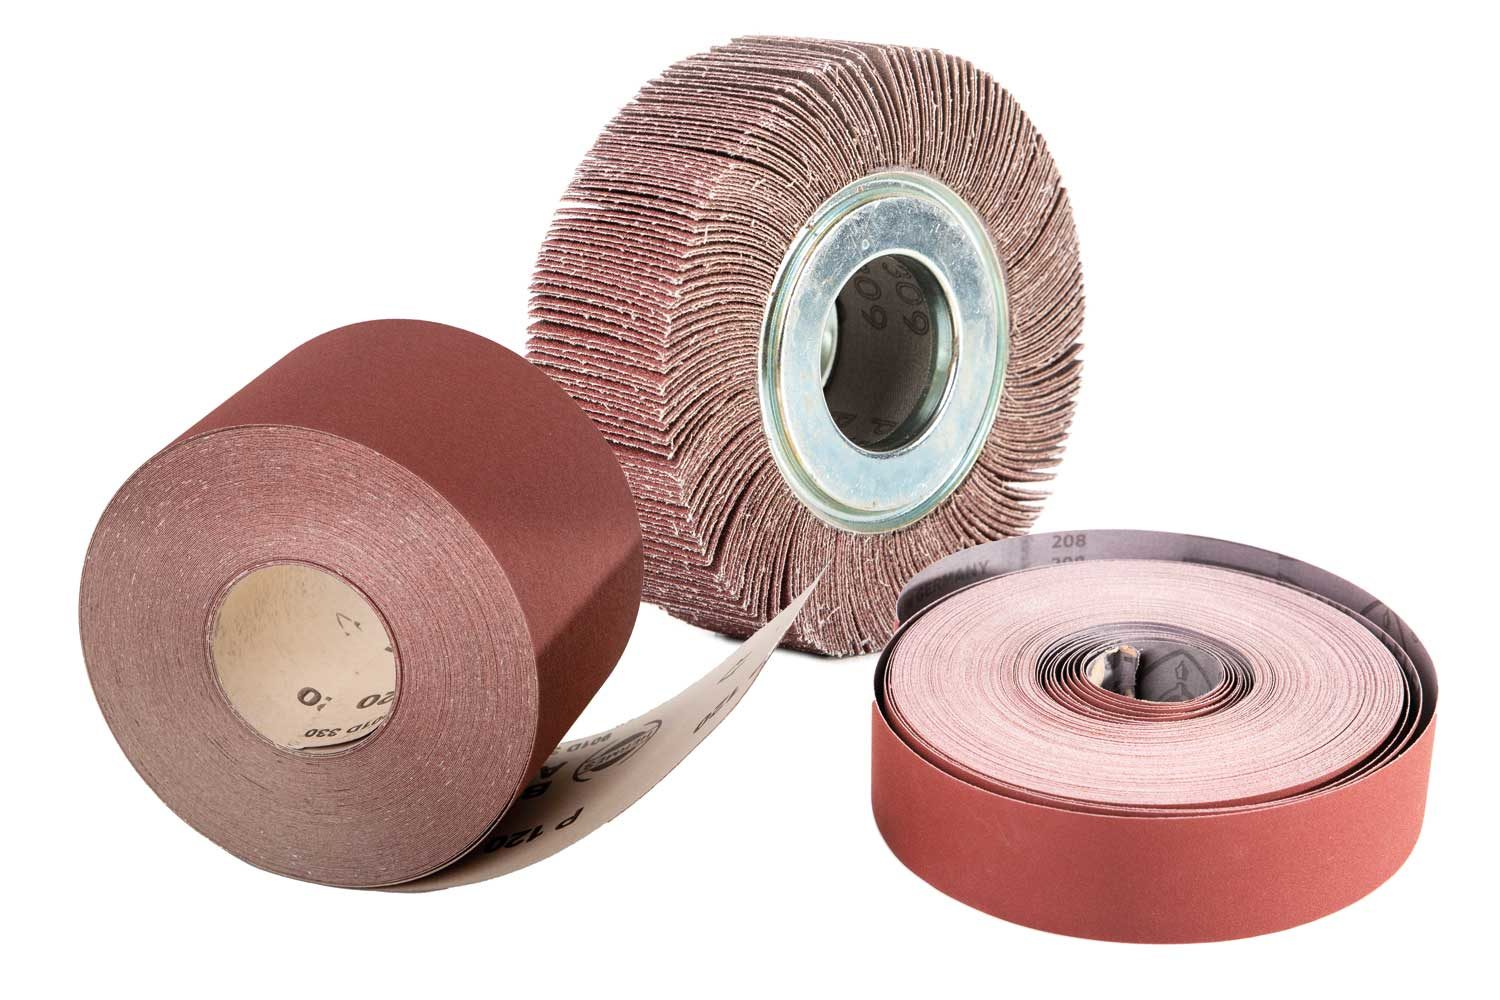 Abrasive papers and cloth